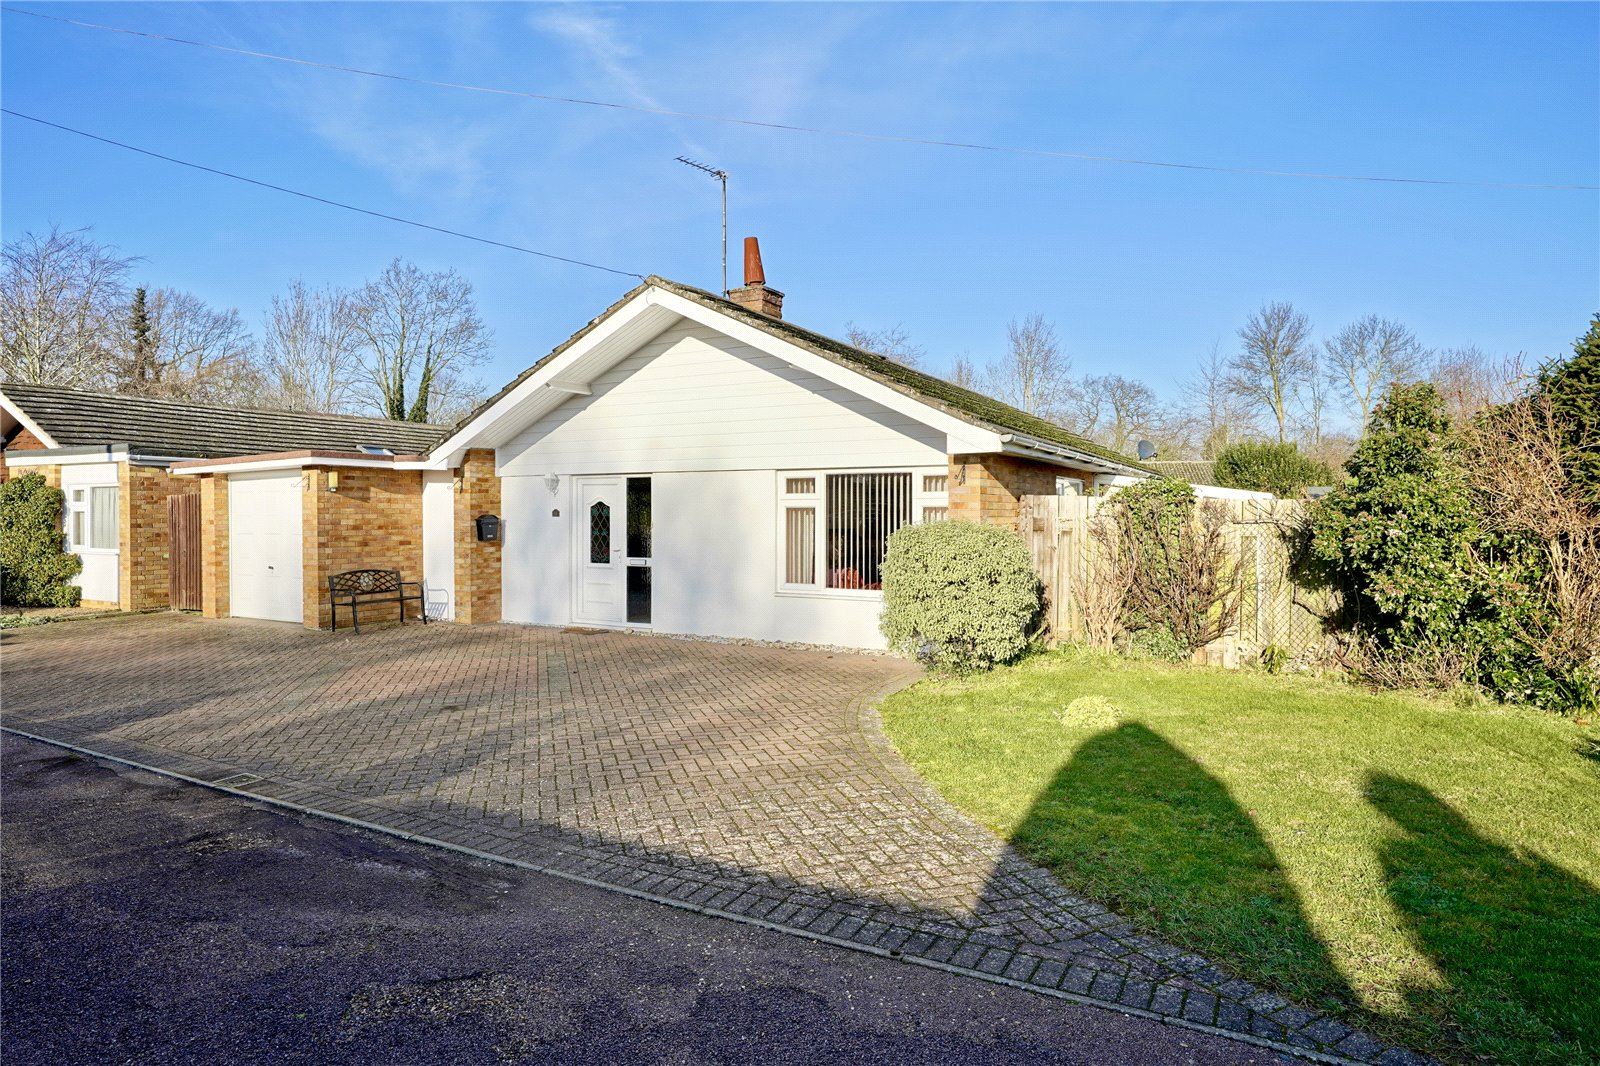 3 bed bungalow for sale in Hemingford Grey, PE28 9EE  - Property Image 1